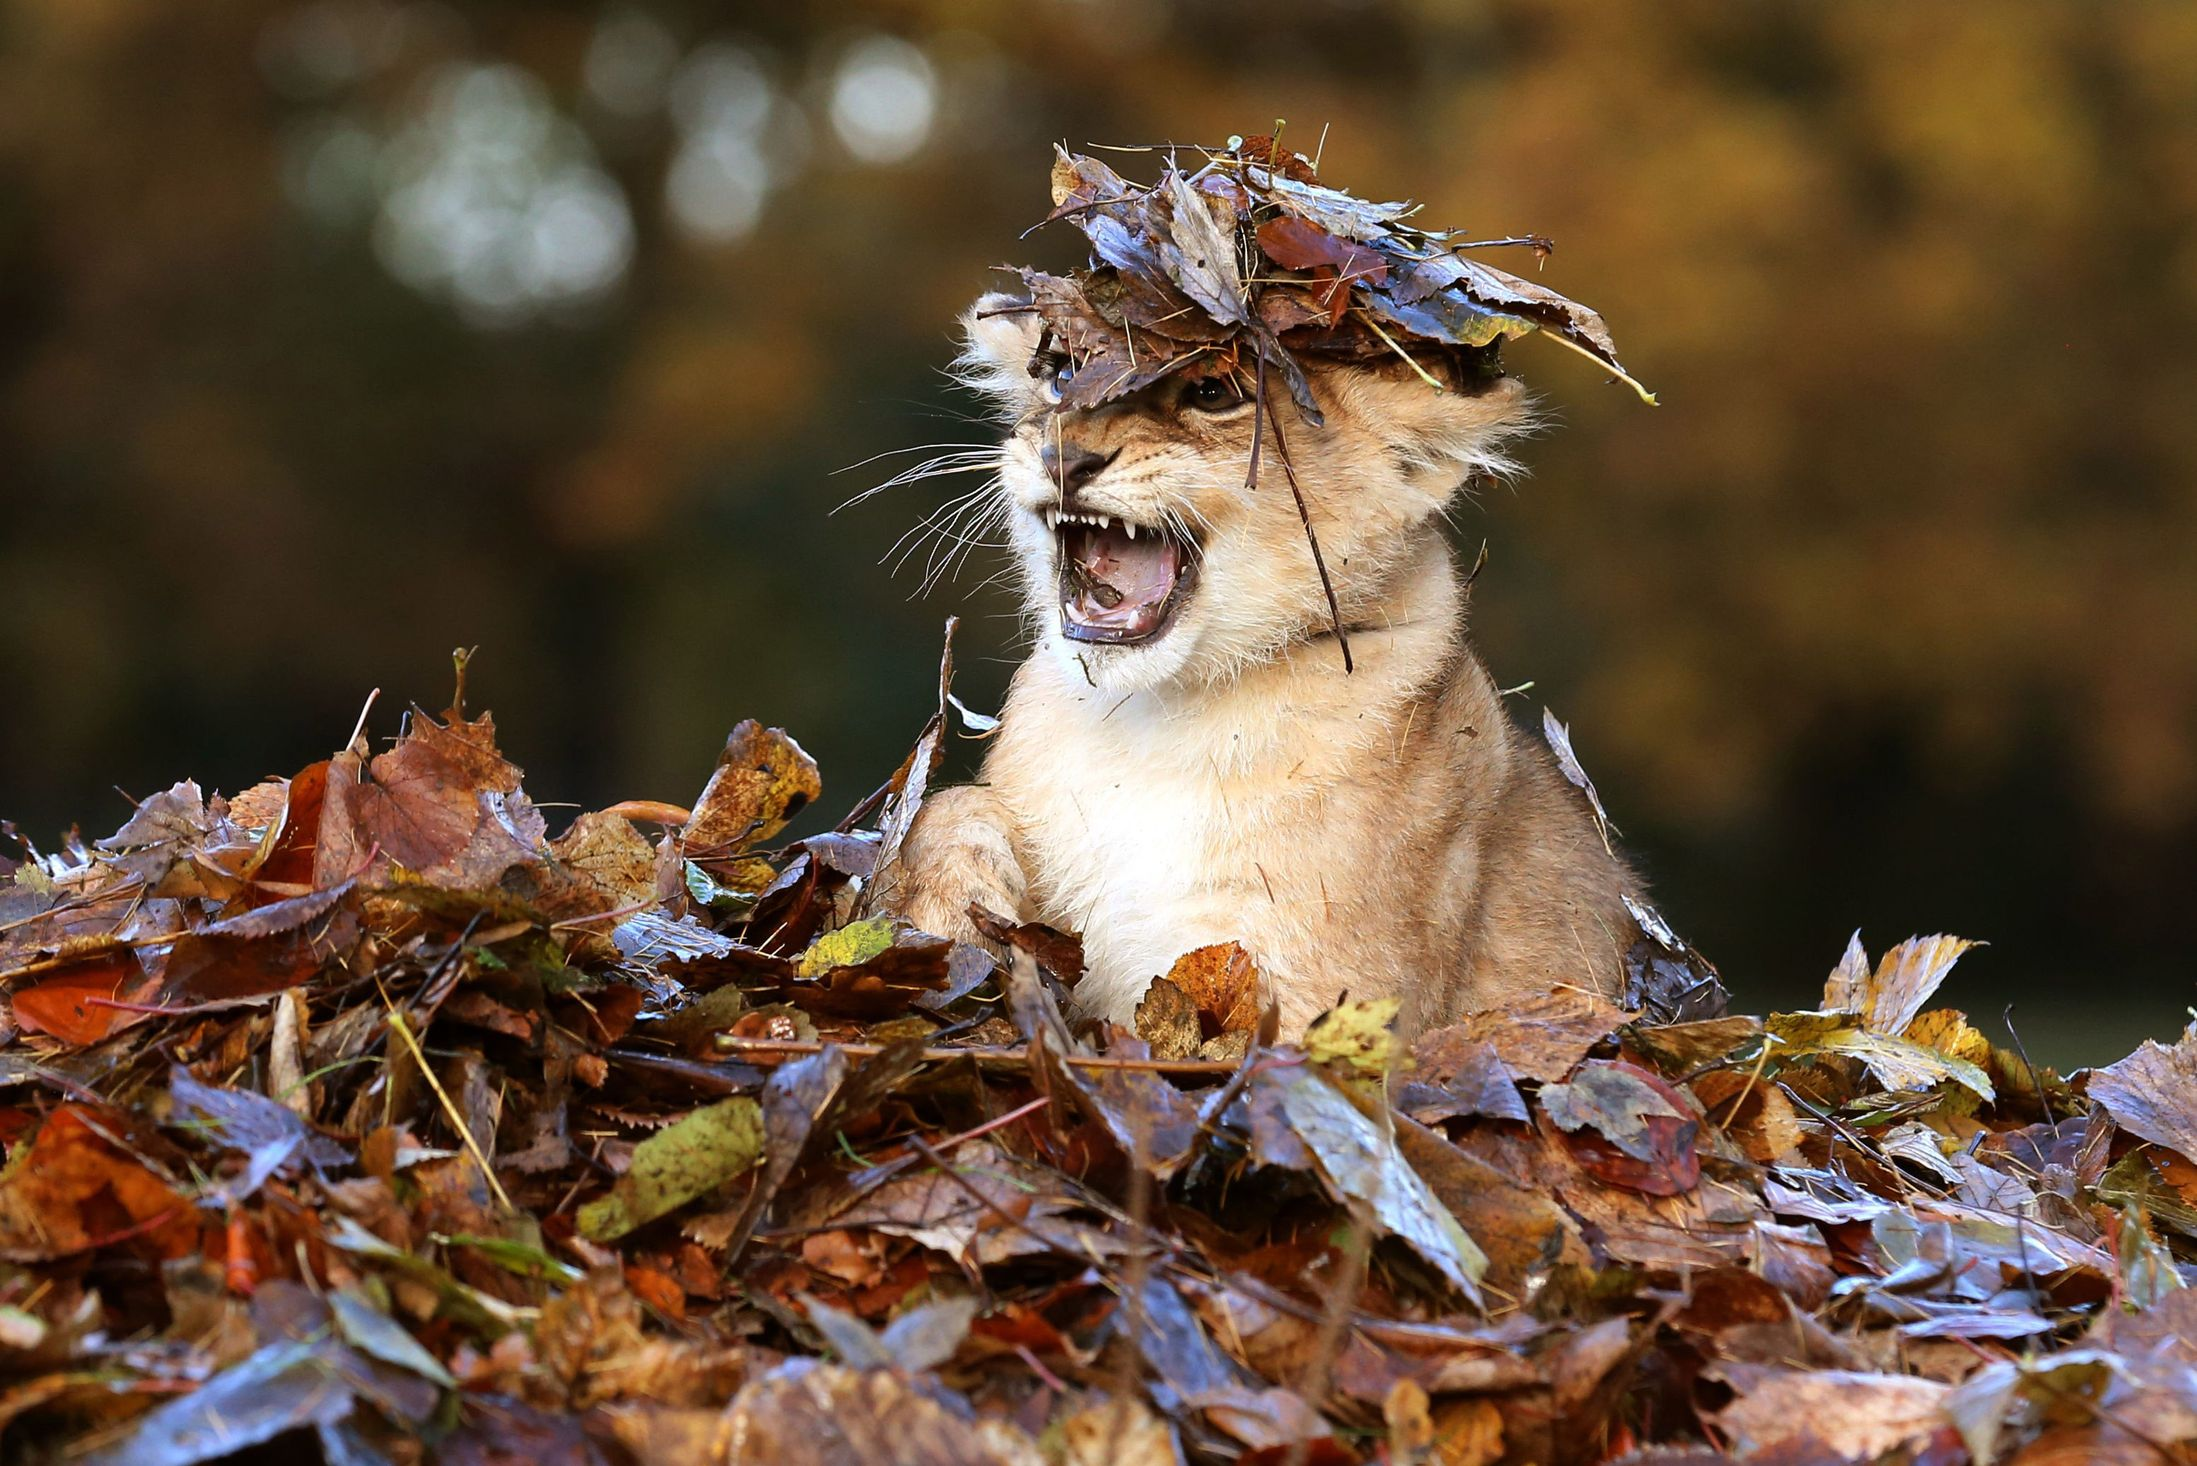 Karis-an-eleven-week-old-lion-cub-plays-in-fallen-leaves ...